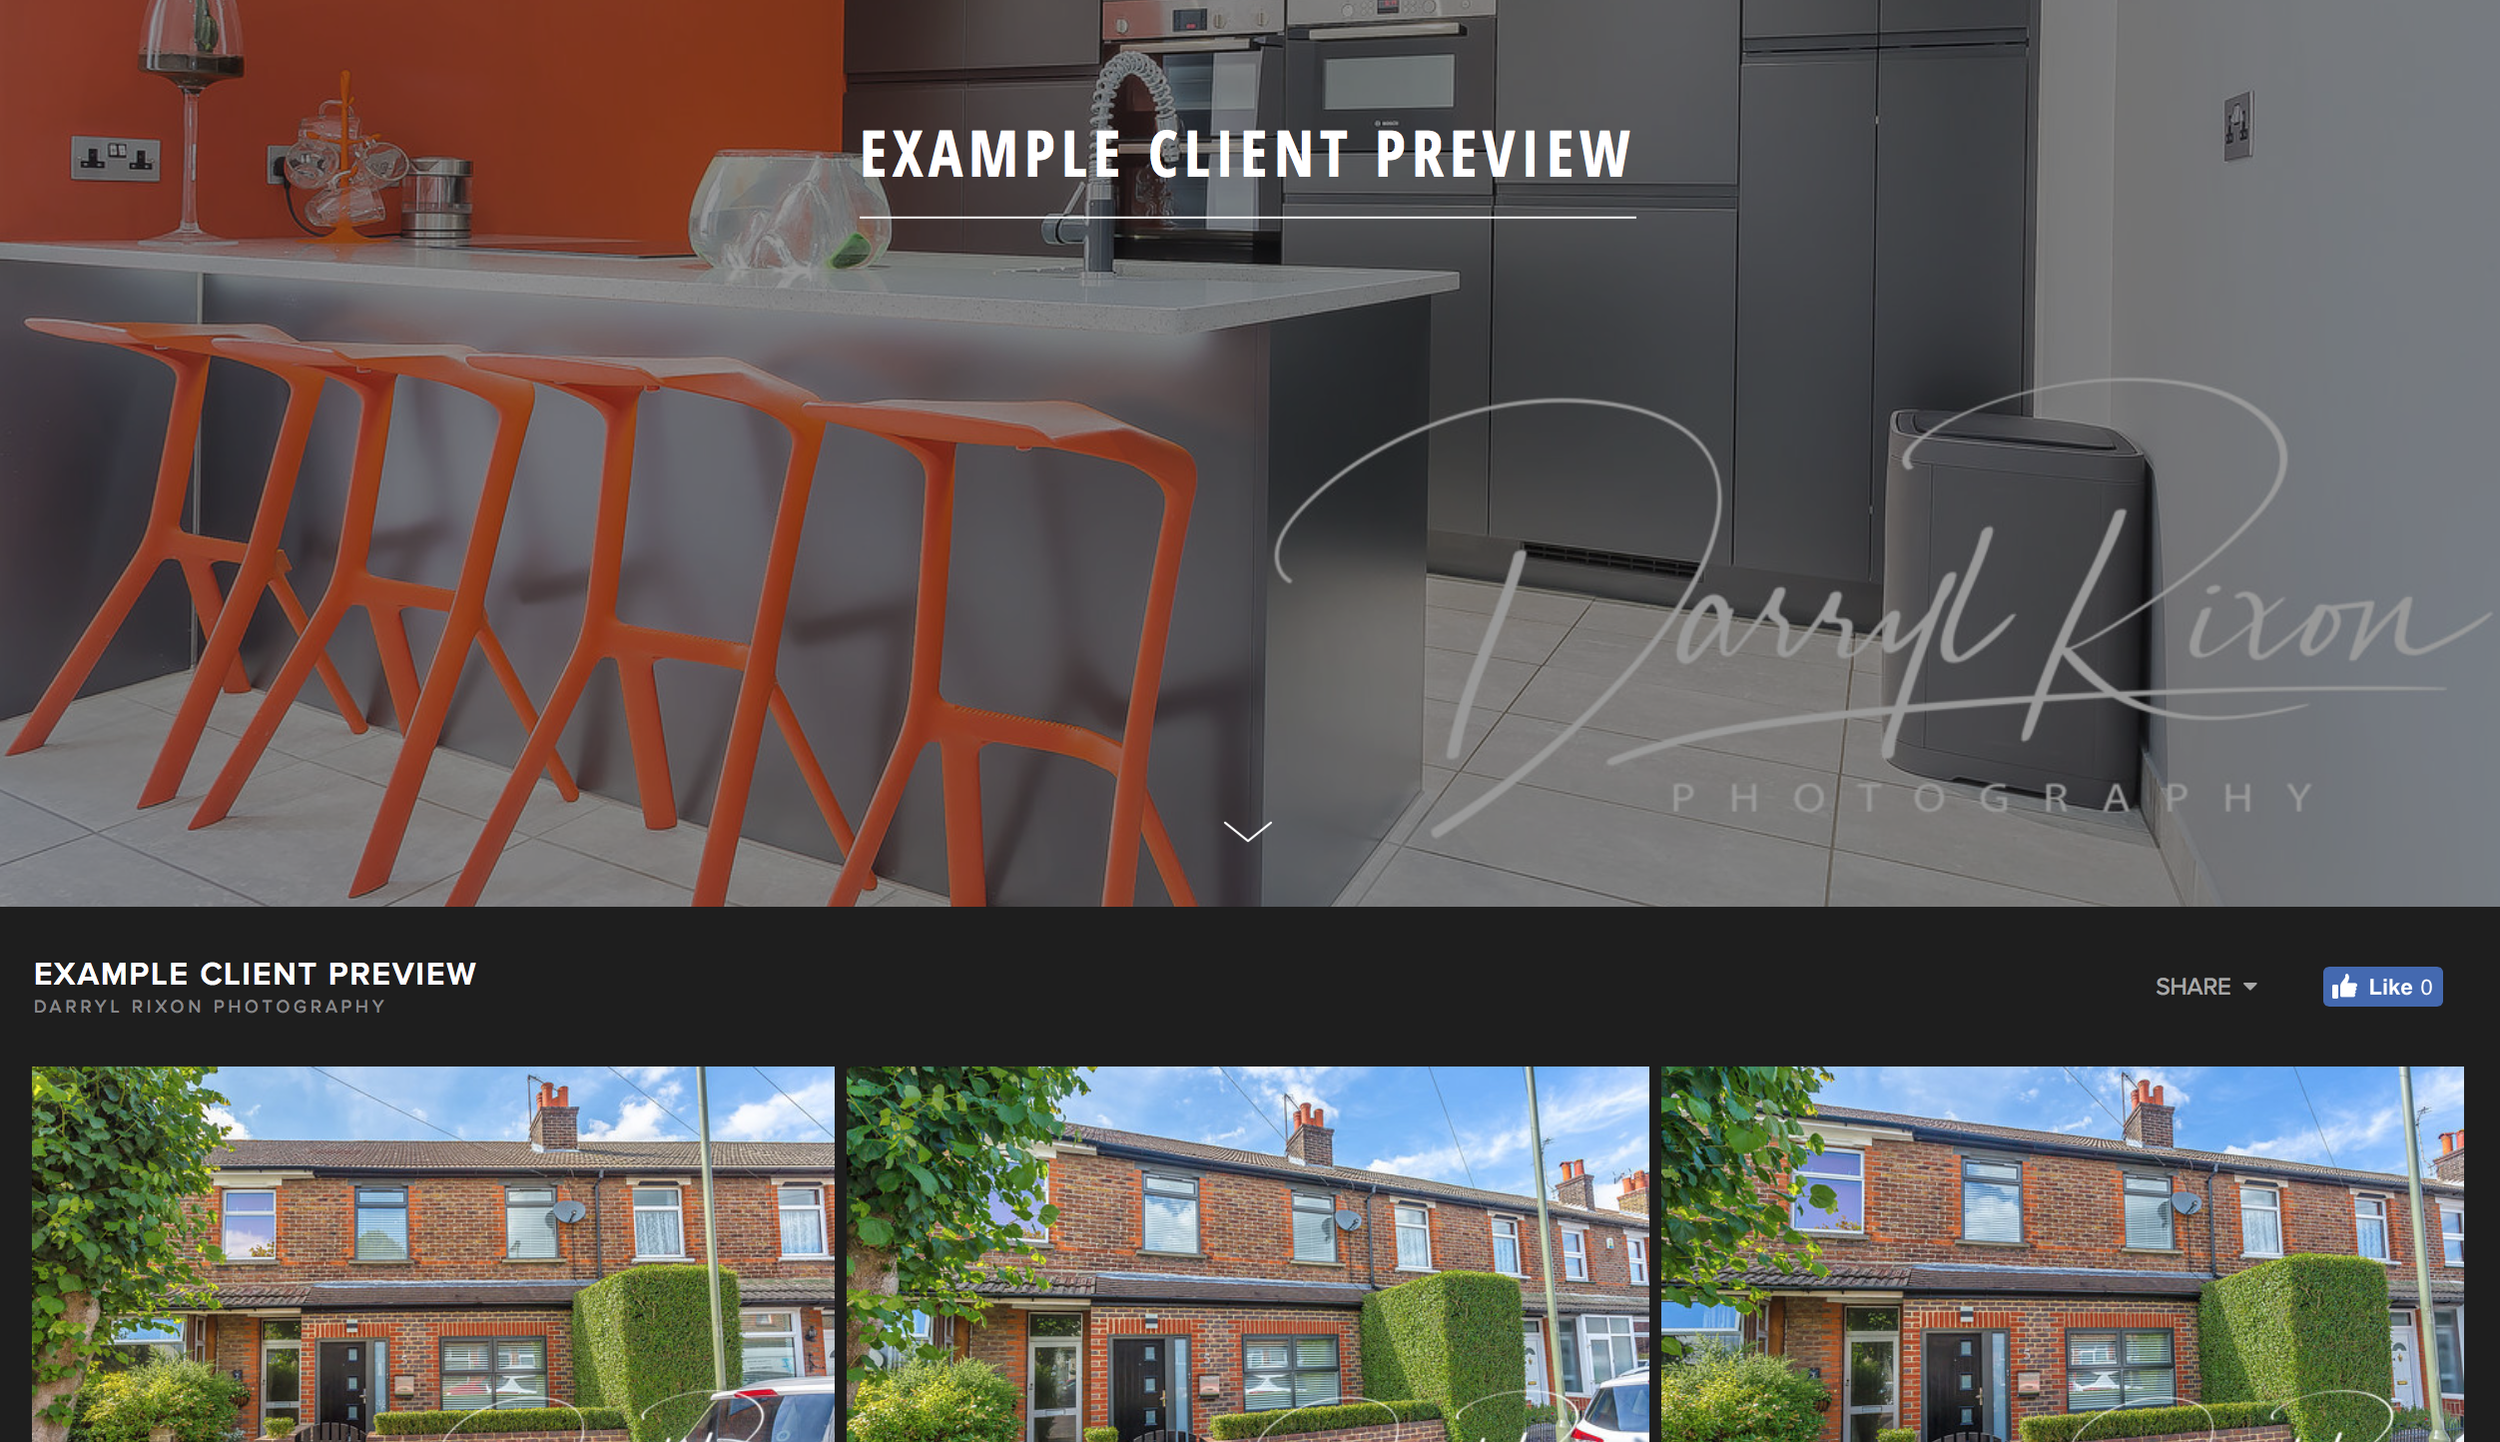 Click on the image to preview an example of how your client will see the images